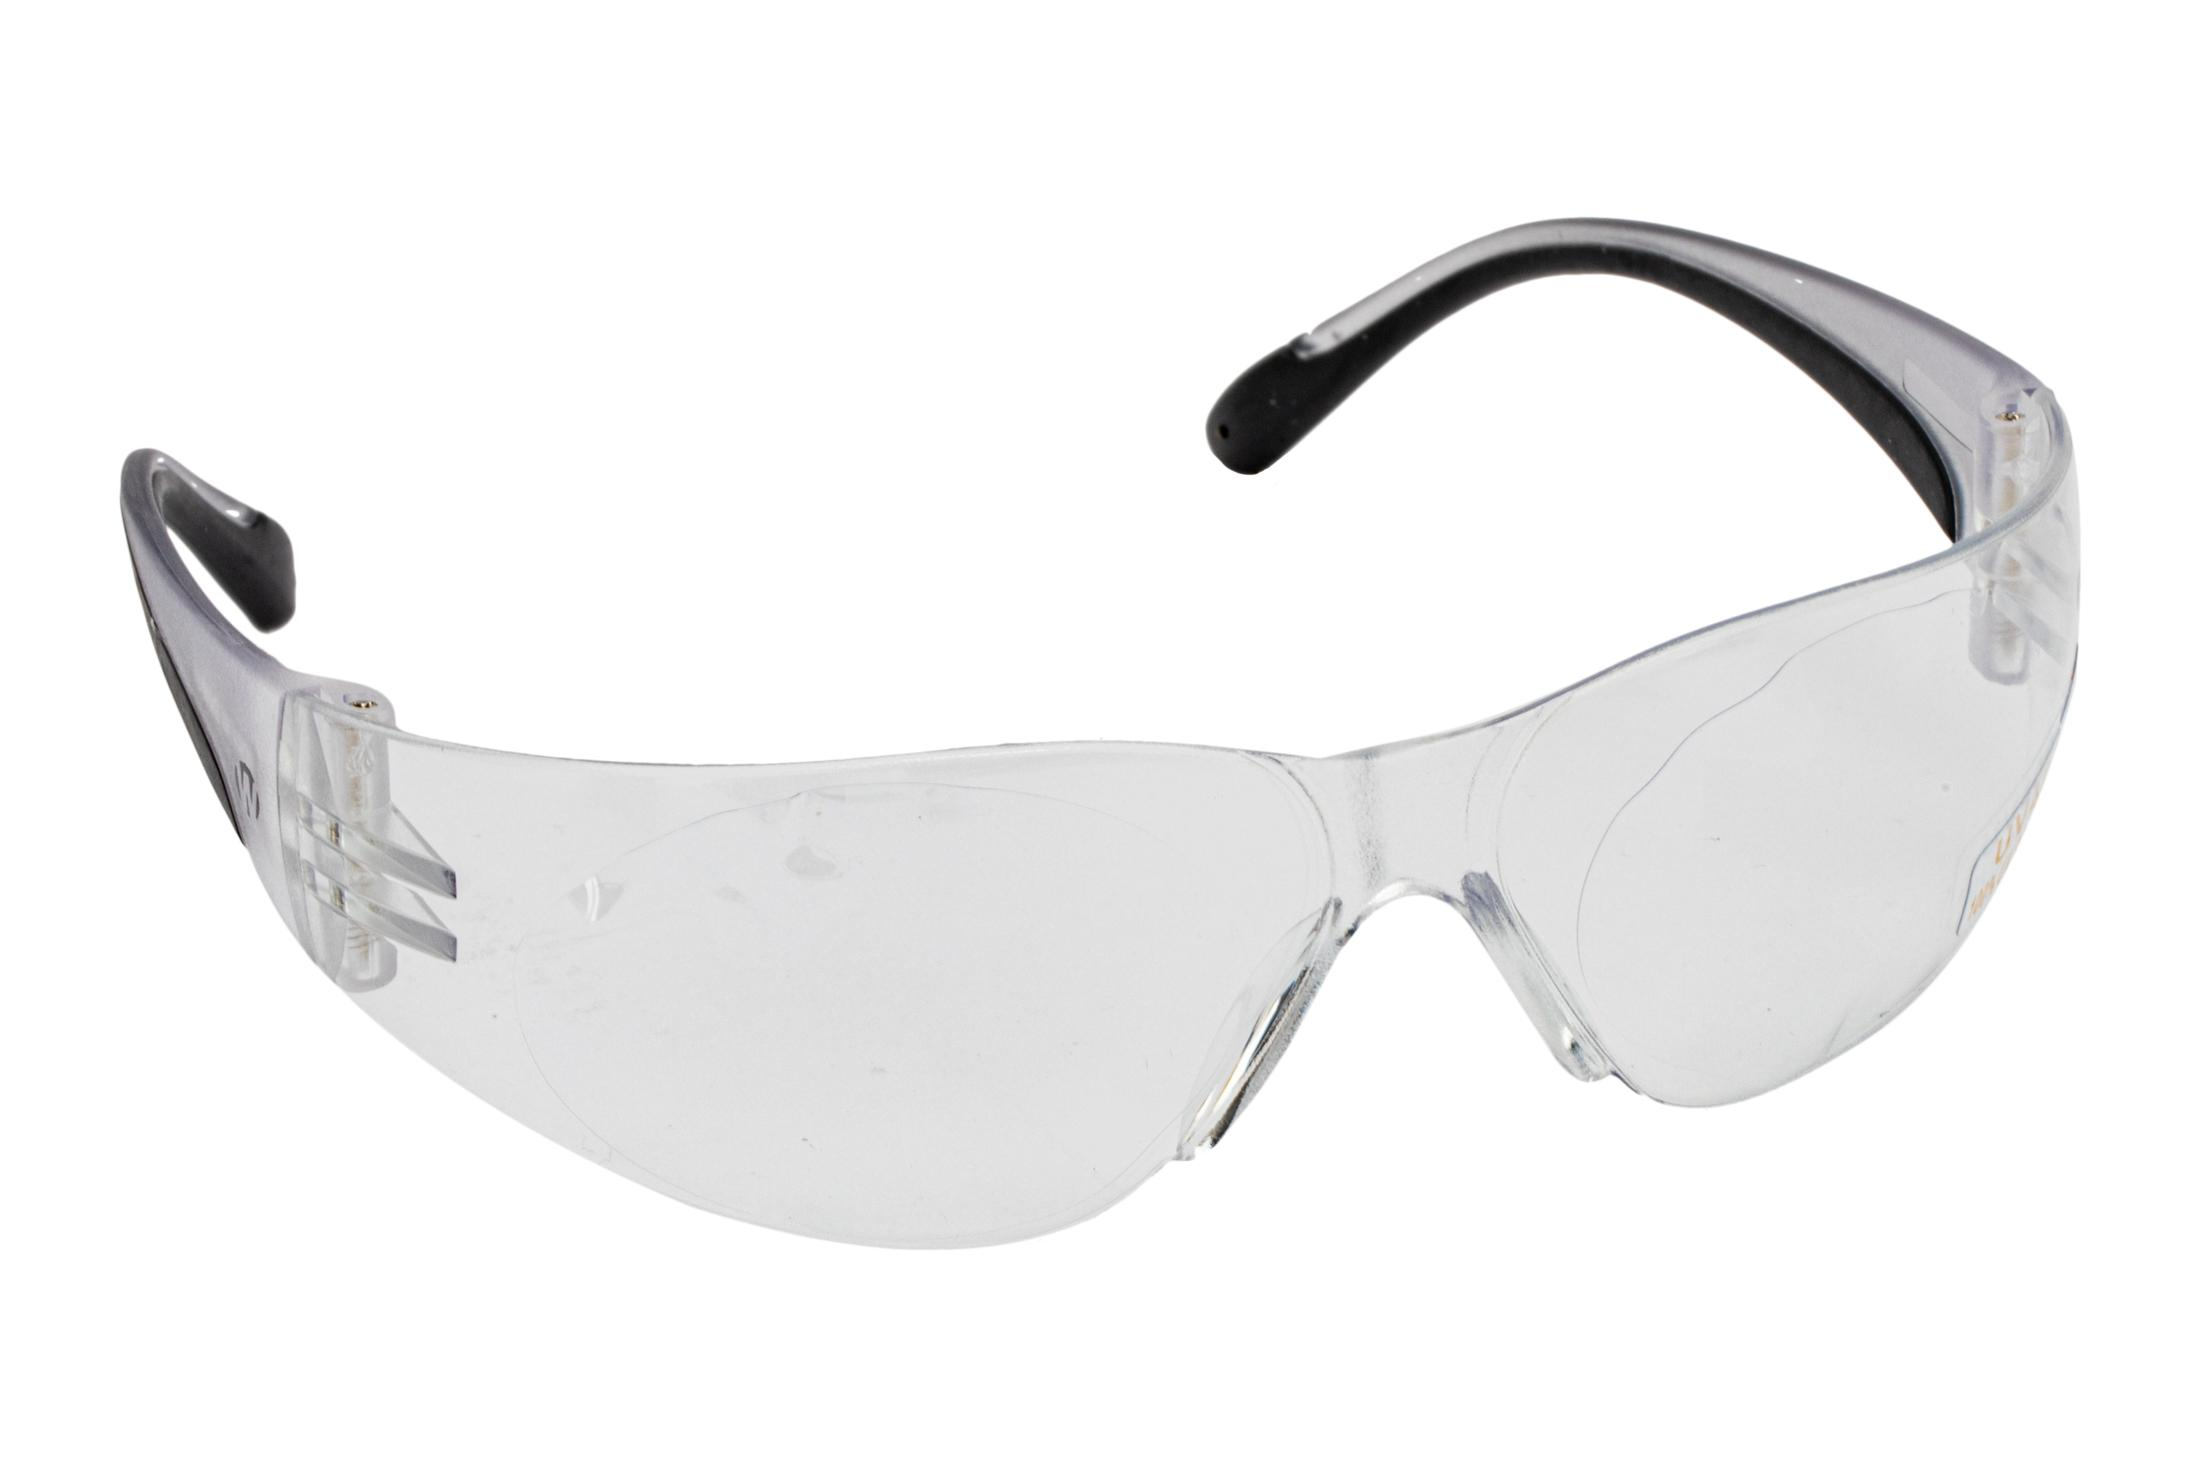 The Walkers clear shooting glasses for women and youth feature high impact resistant polycarbonate lenses